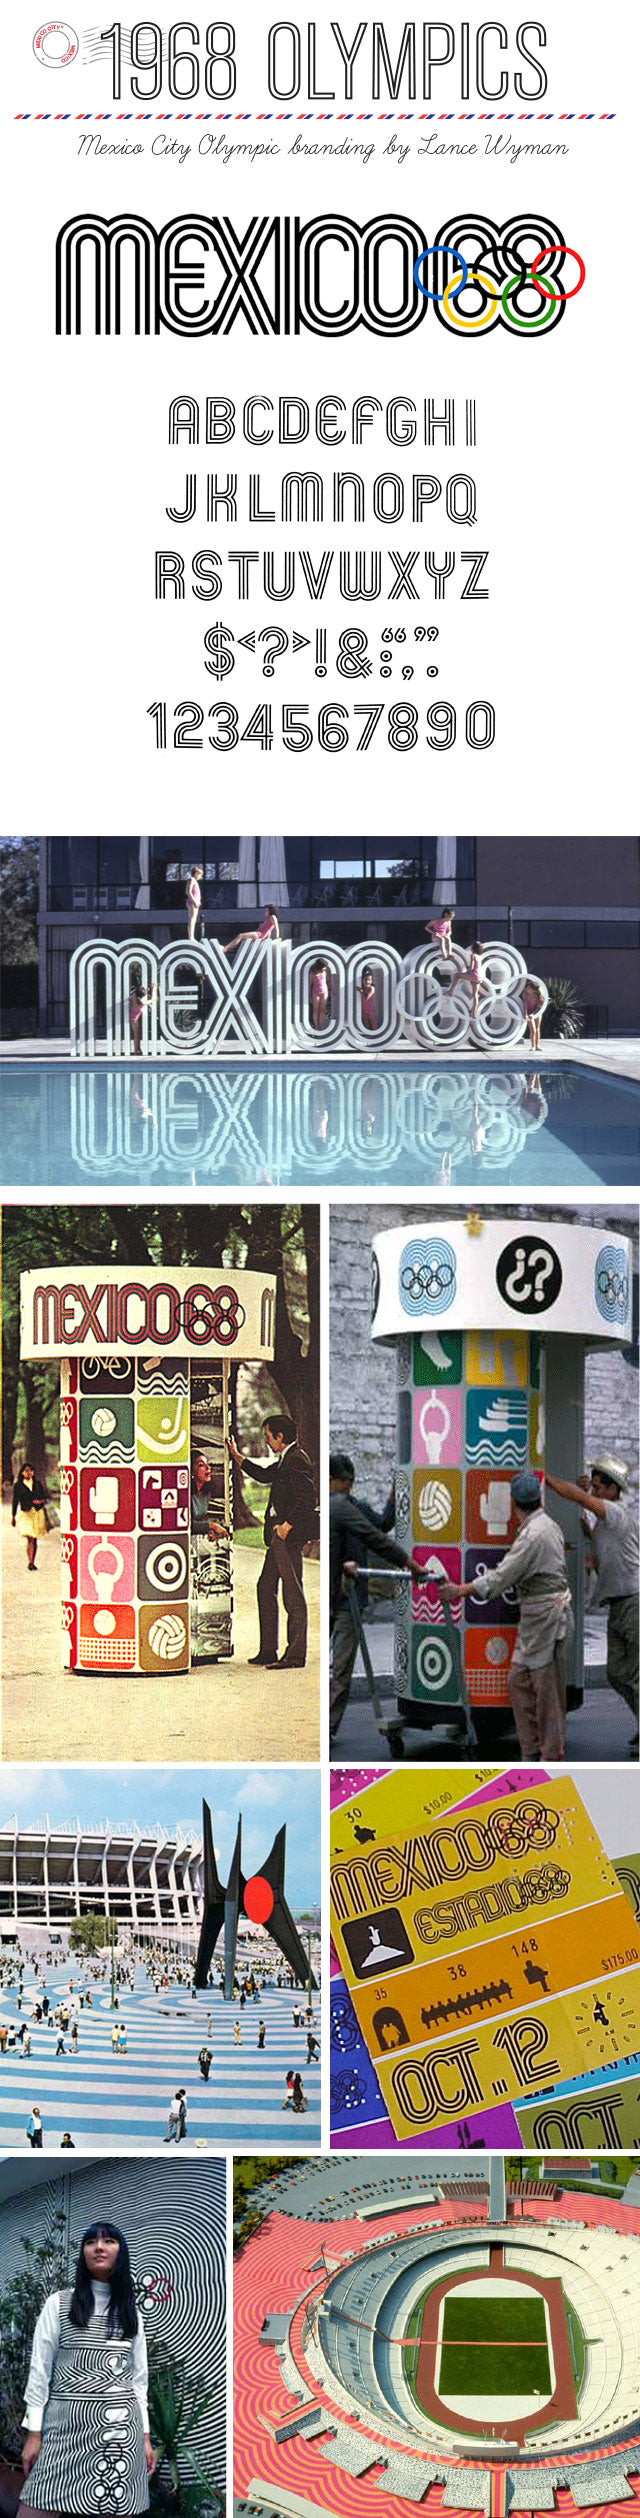 1968 mexico olympic branding graphic design